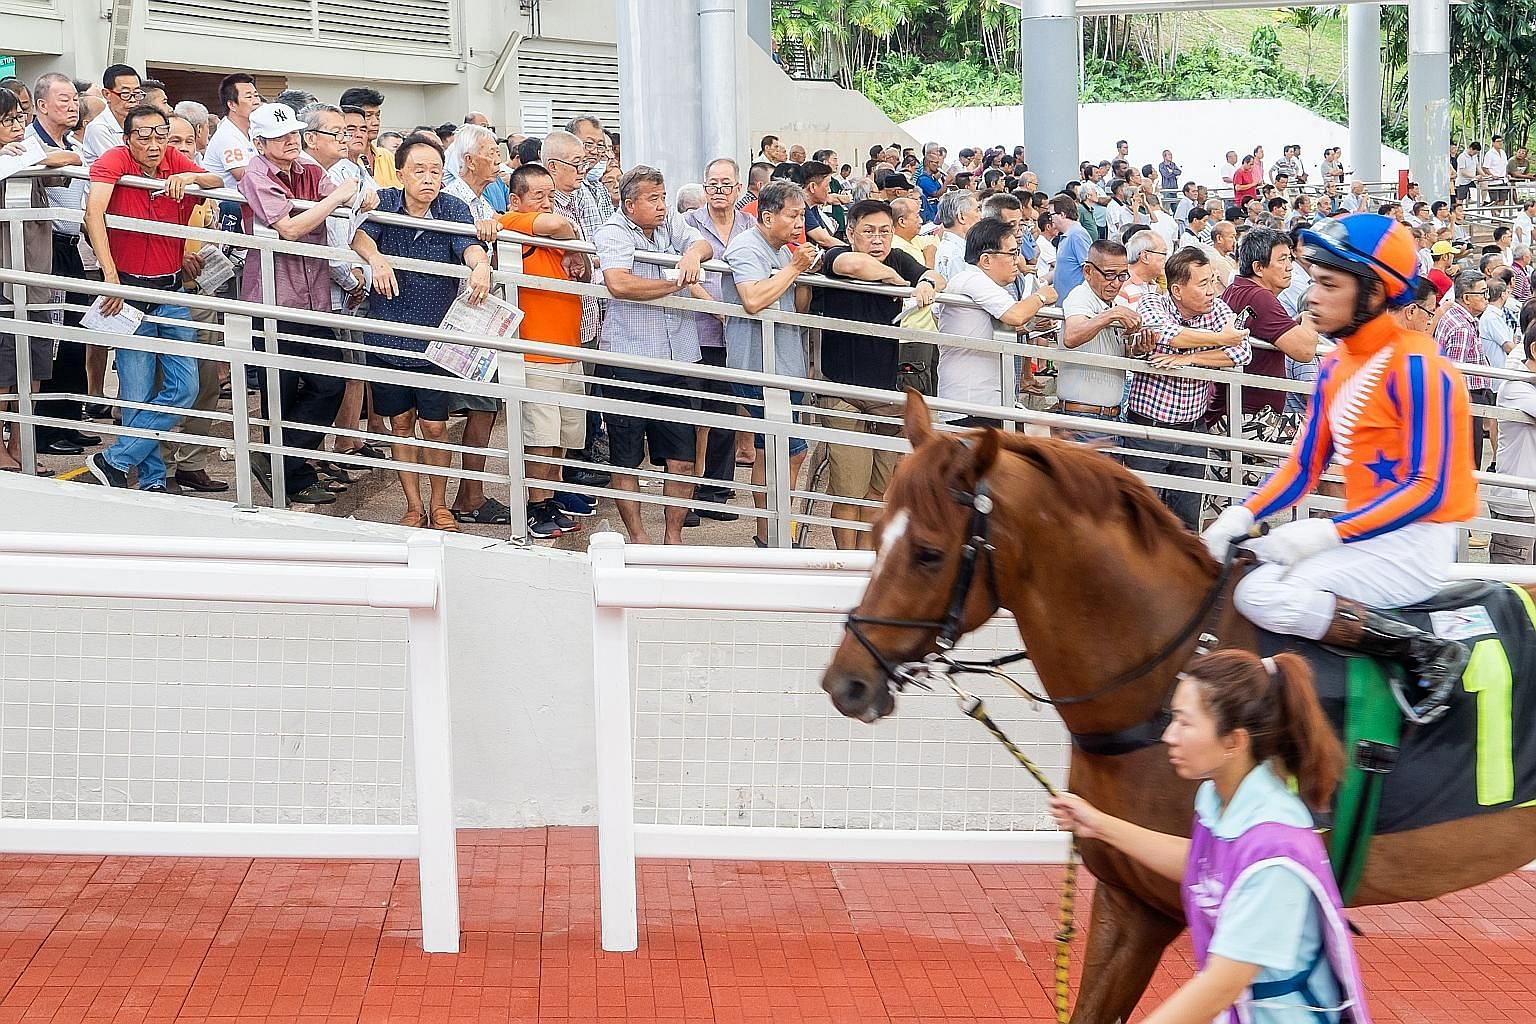 A sizeable crowd seen at the parade ring of the Singapore Turf Club for the races on Sunday. PHOTO: THE NEW PAPER